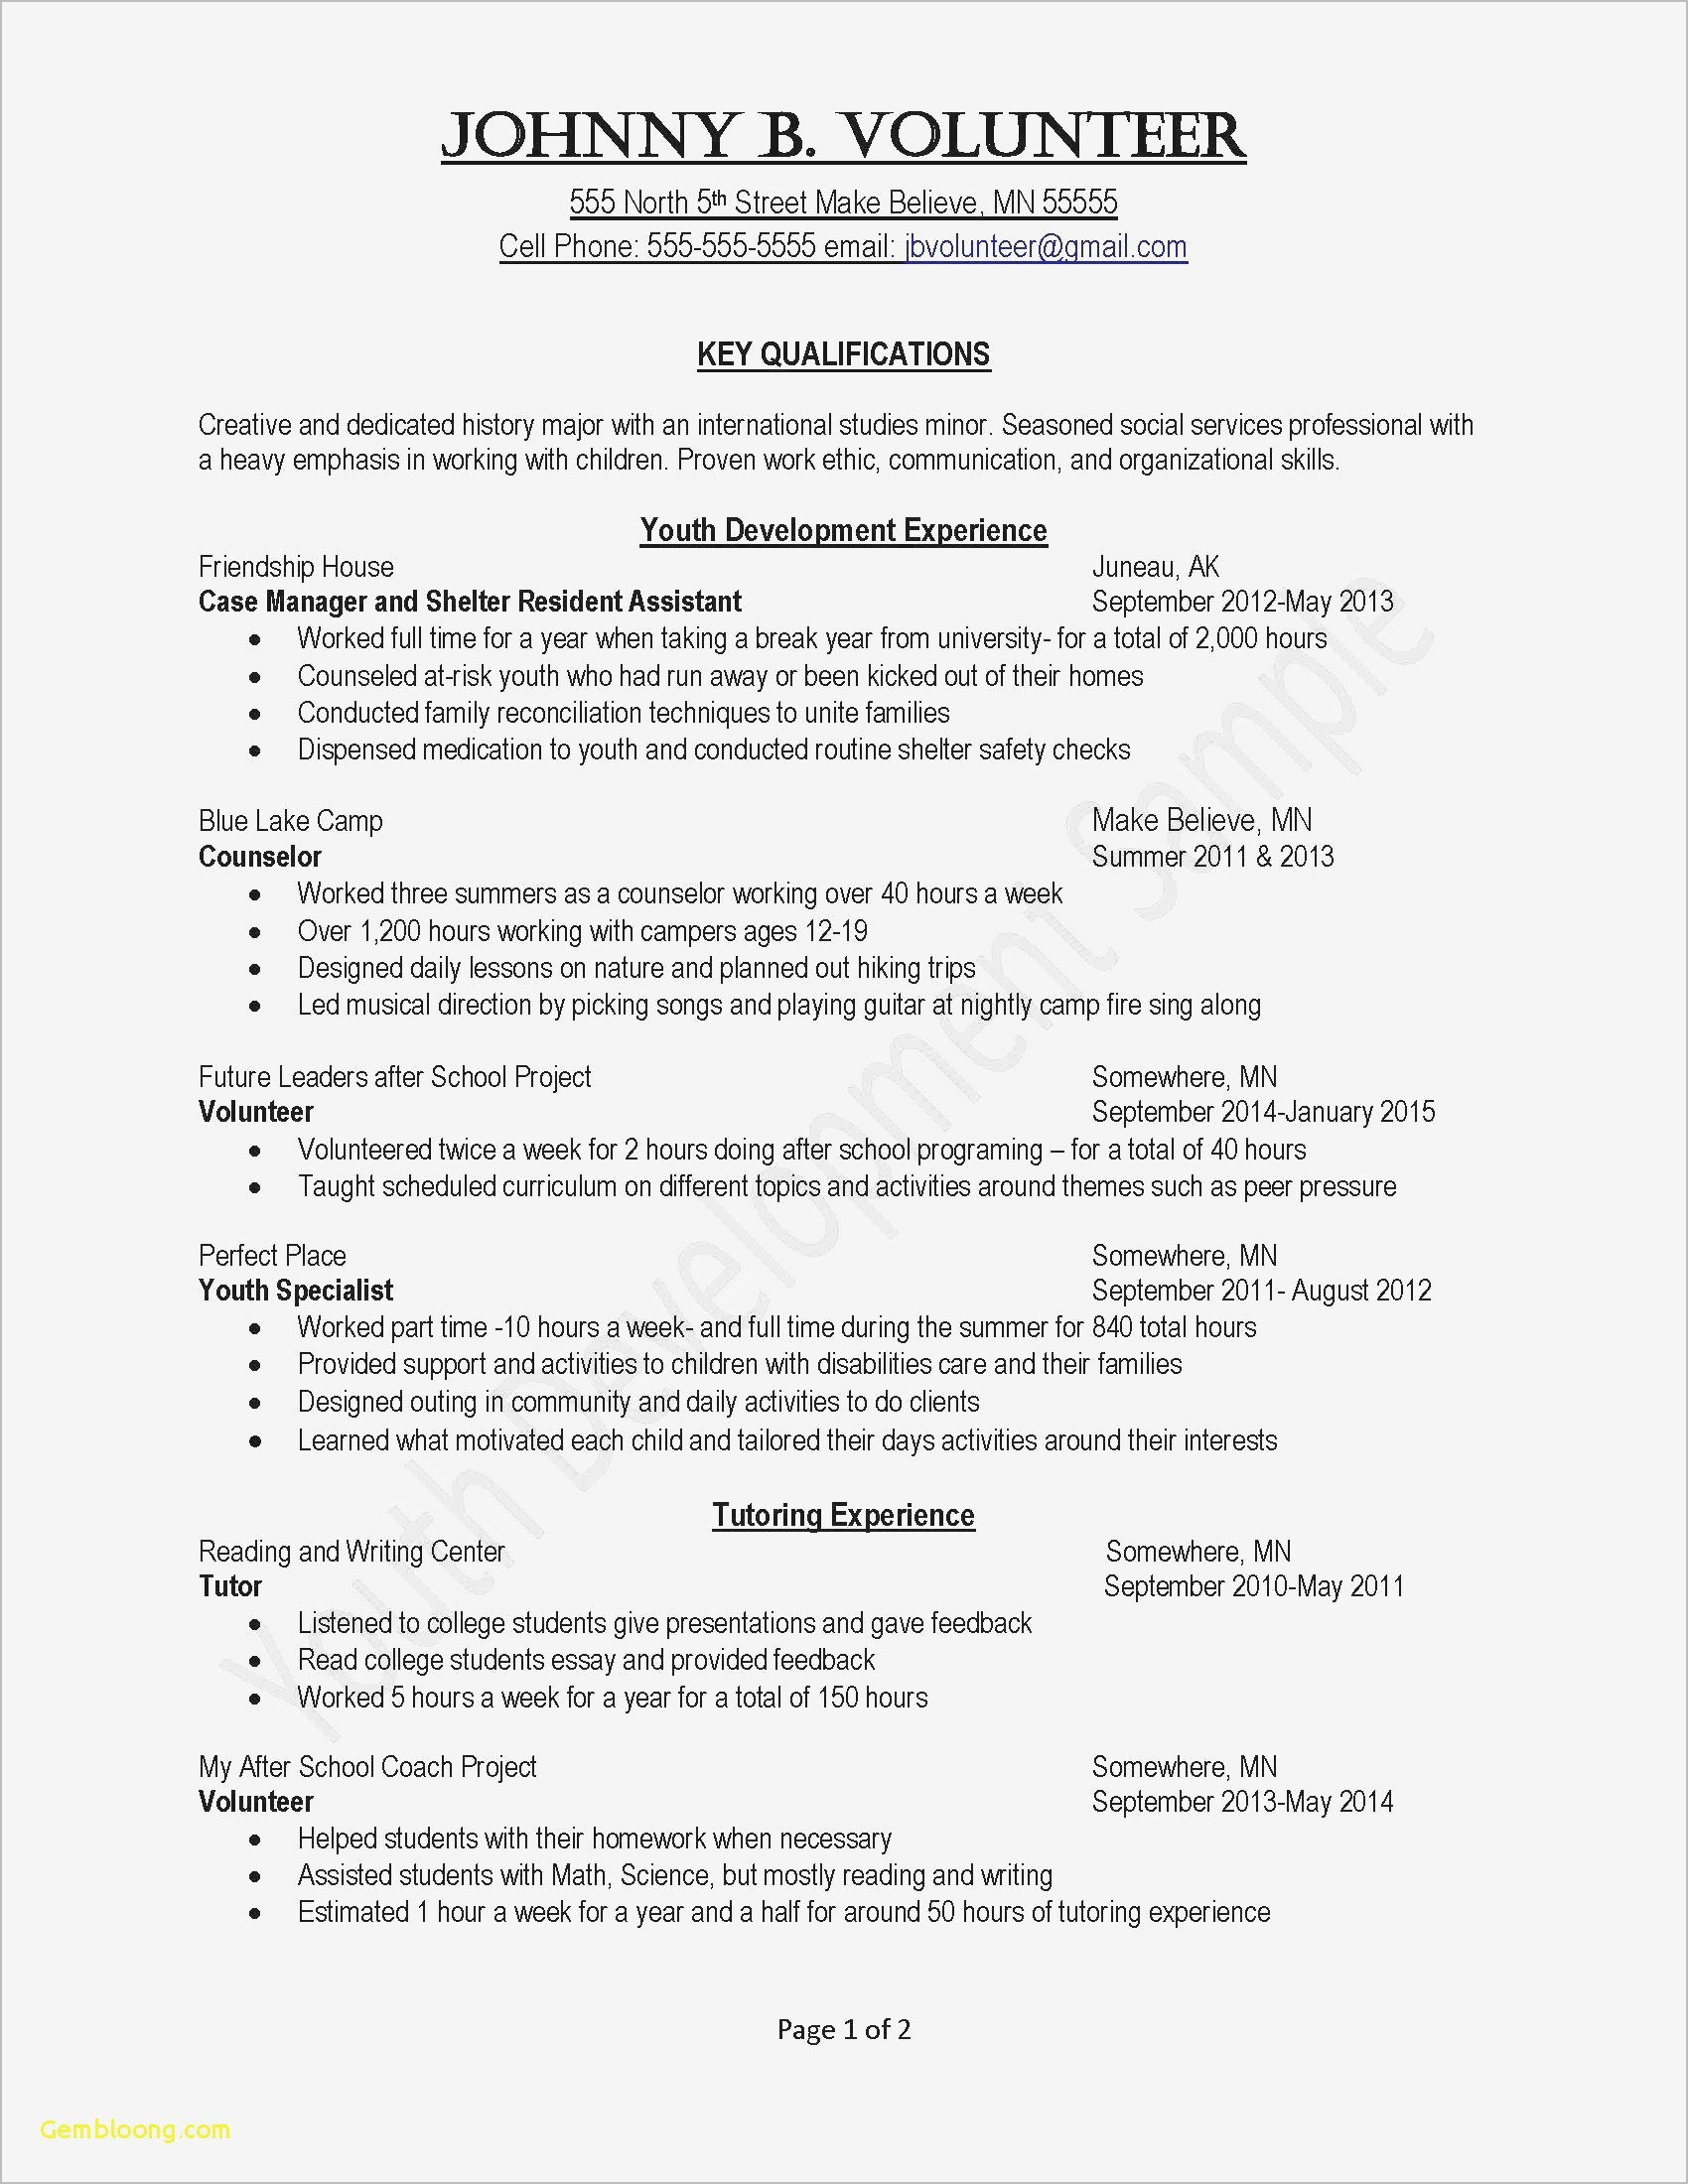 part time job offer letter template Collection-Job fer Letter Template Us Copy Od Consultant Cover Letter Fungram Valid Simple Cover Letter Template 13-e